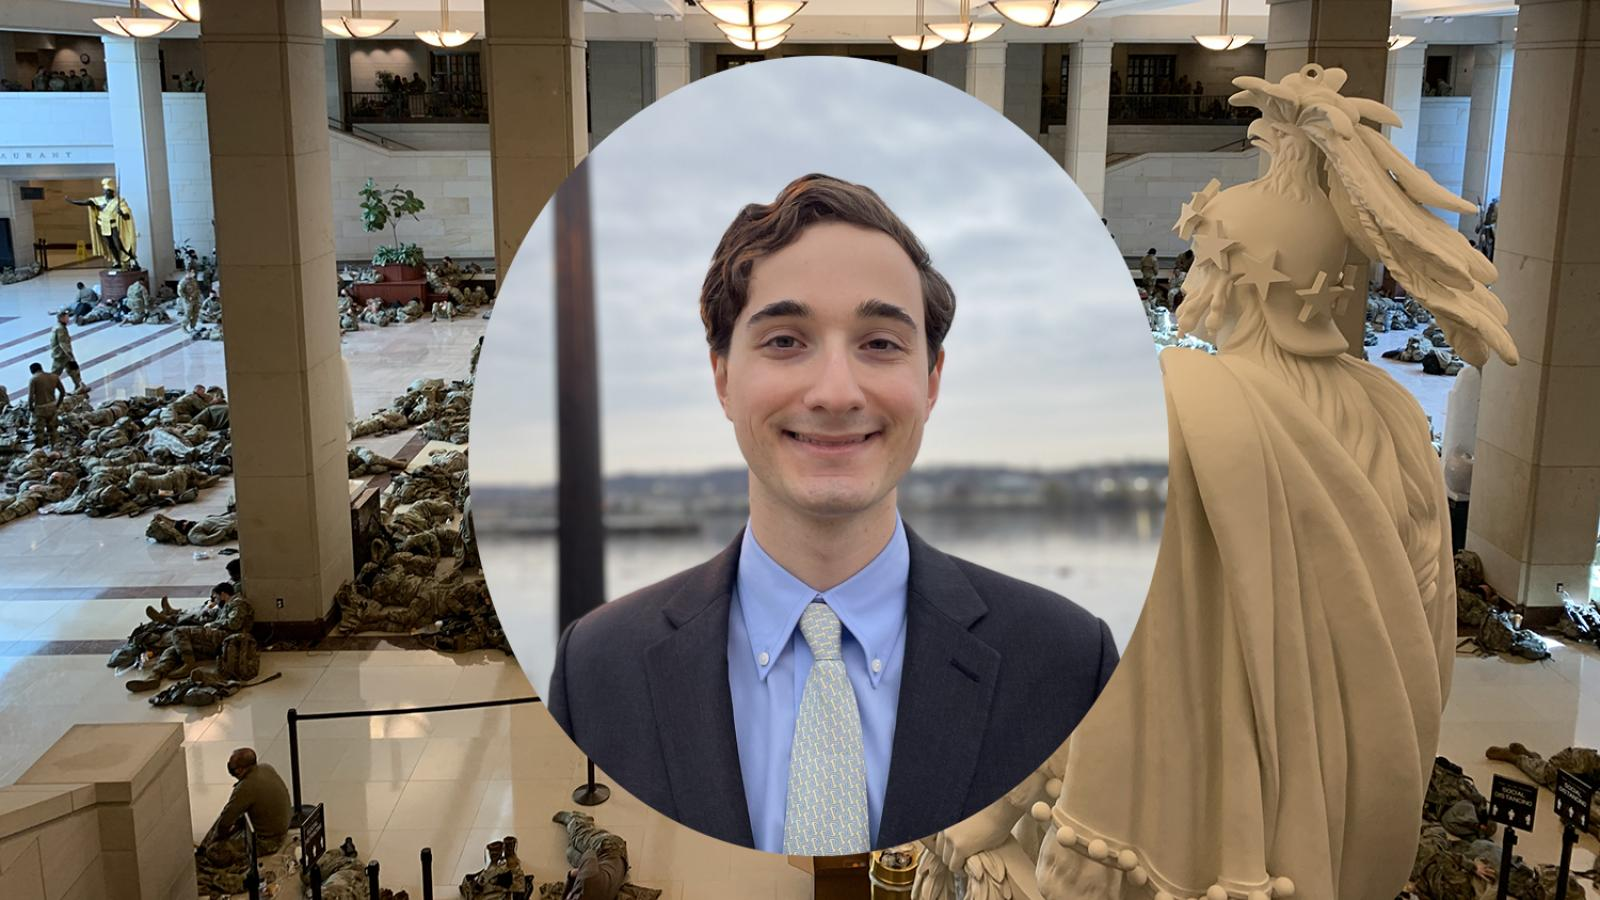 Combined image of Marc Rod headshot superimposed on his photo of troops in Capitol.